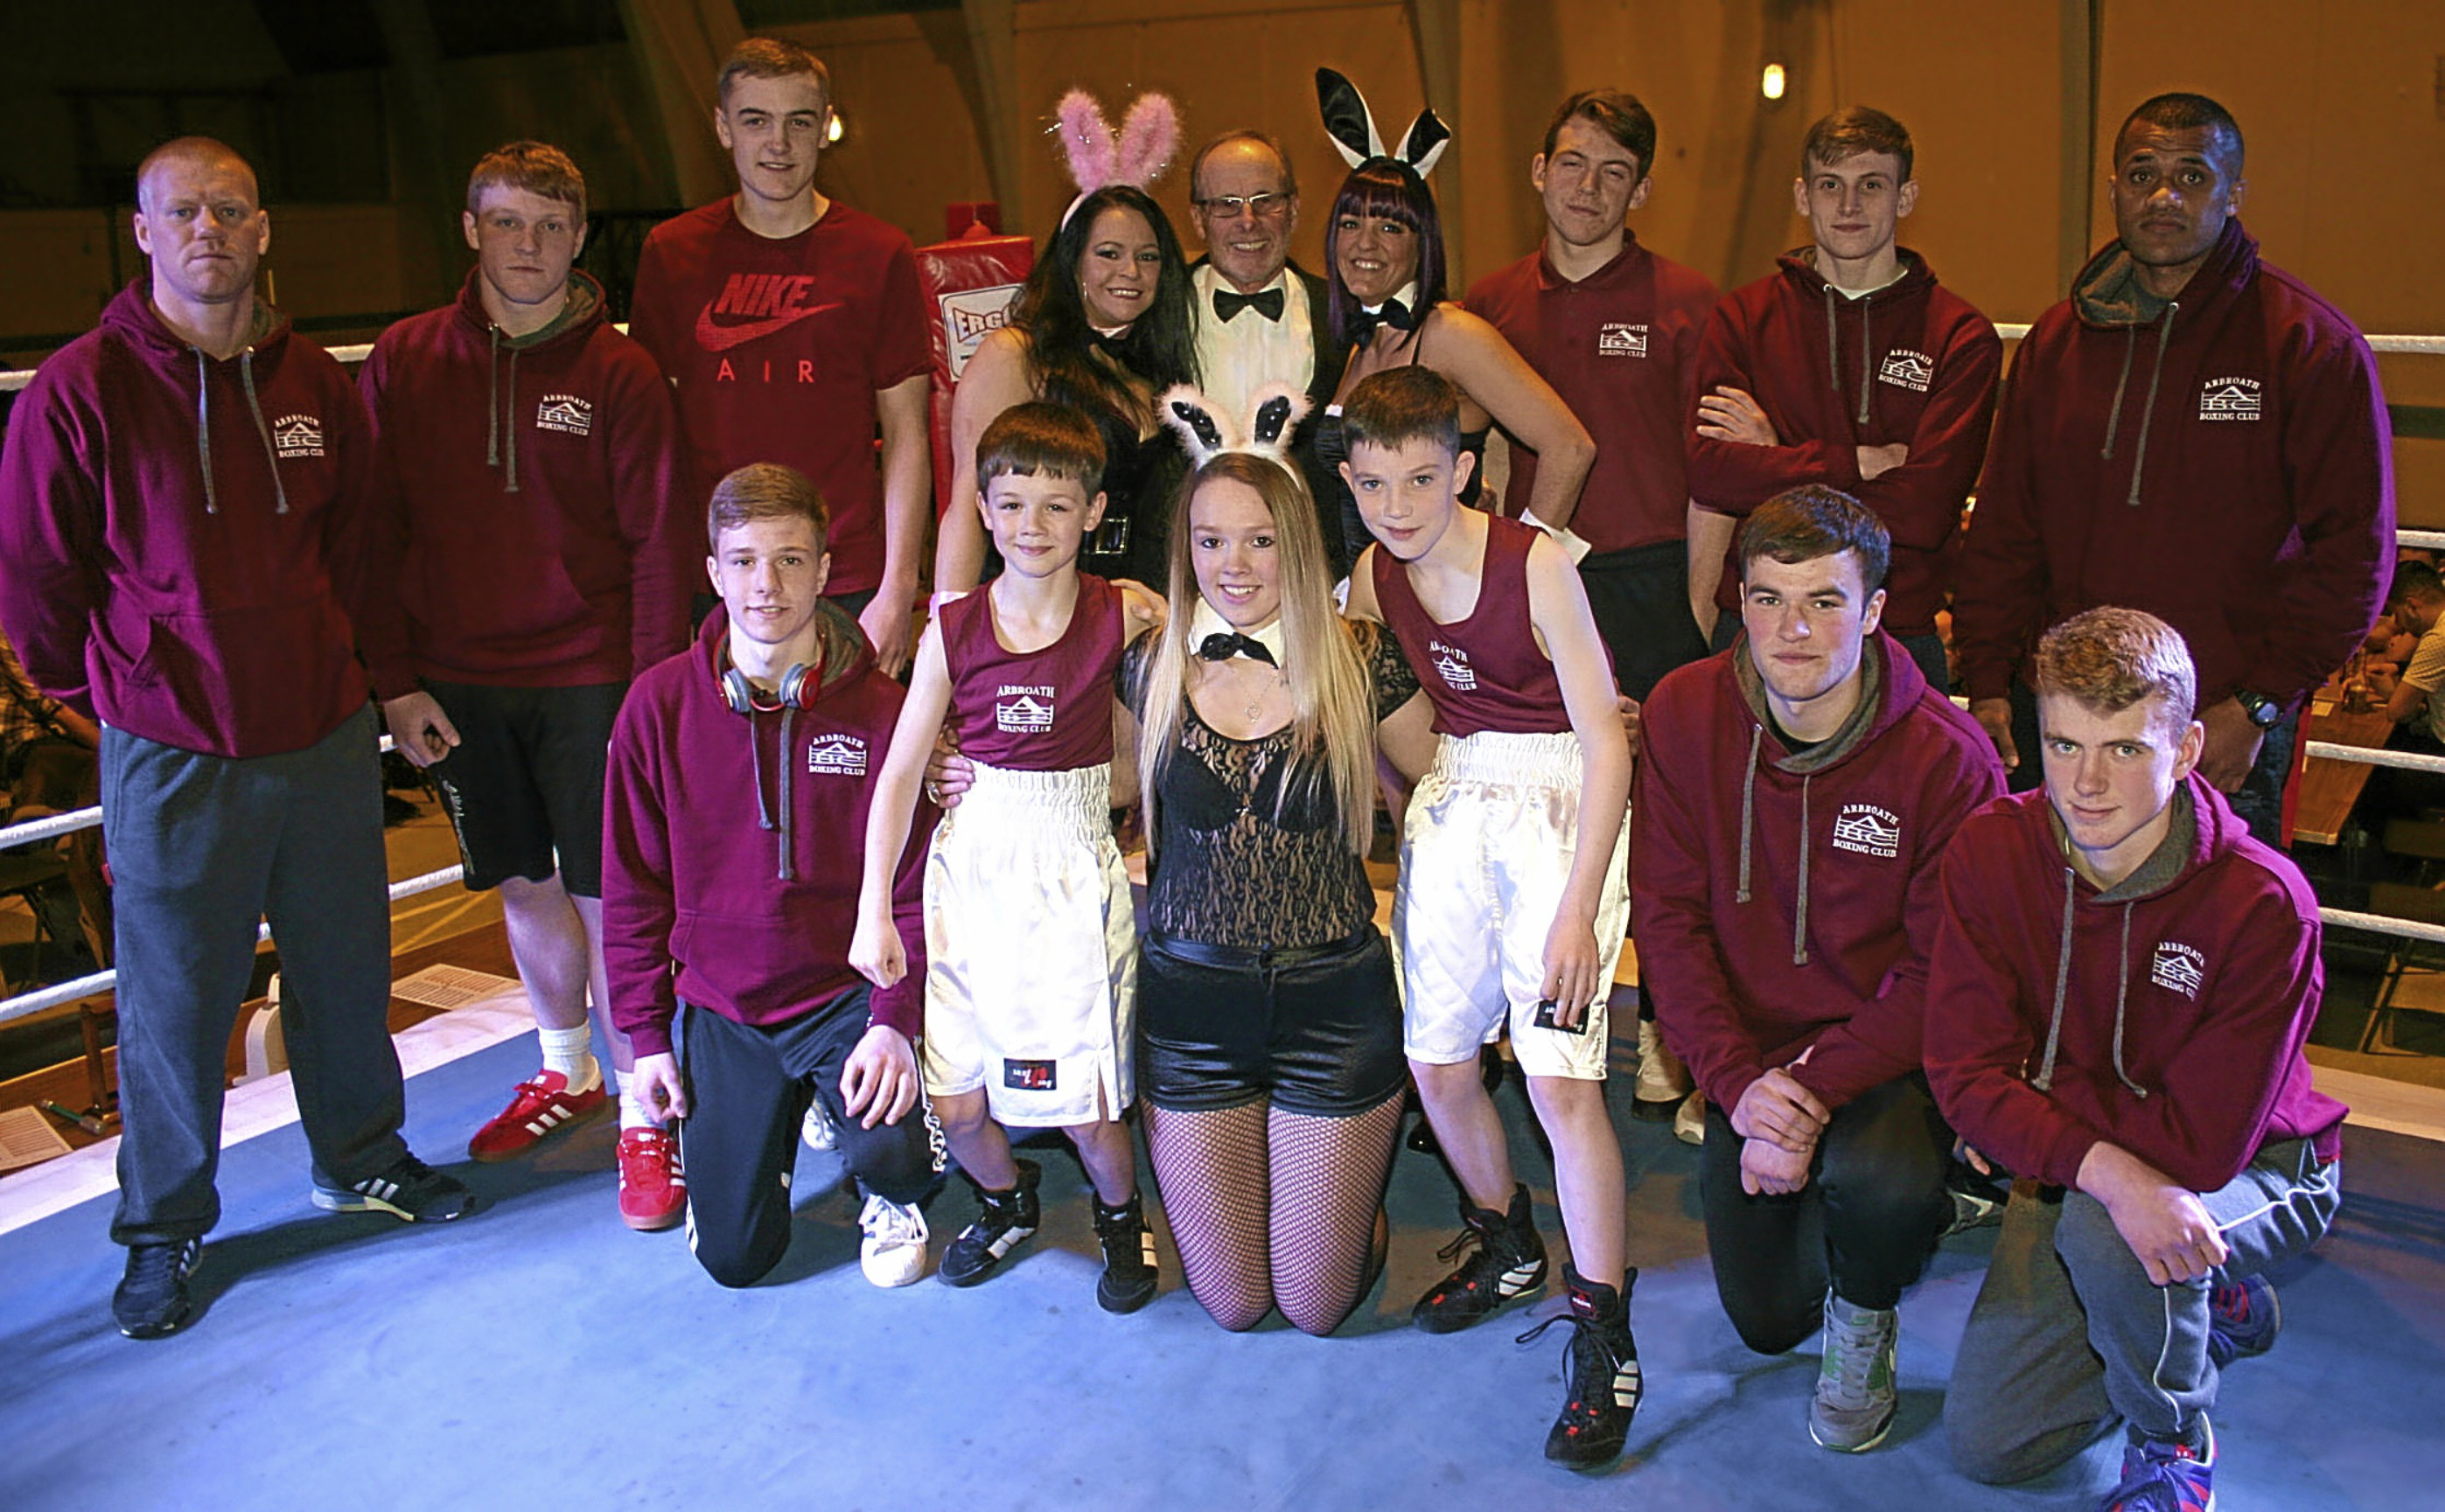 The Arbroath boxers who took part with ring girl Louise Berrie at the front.